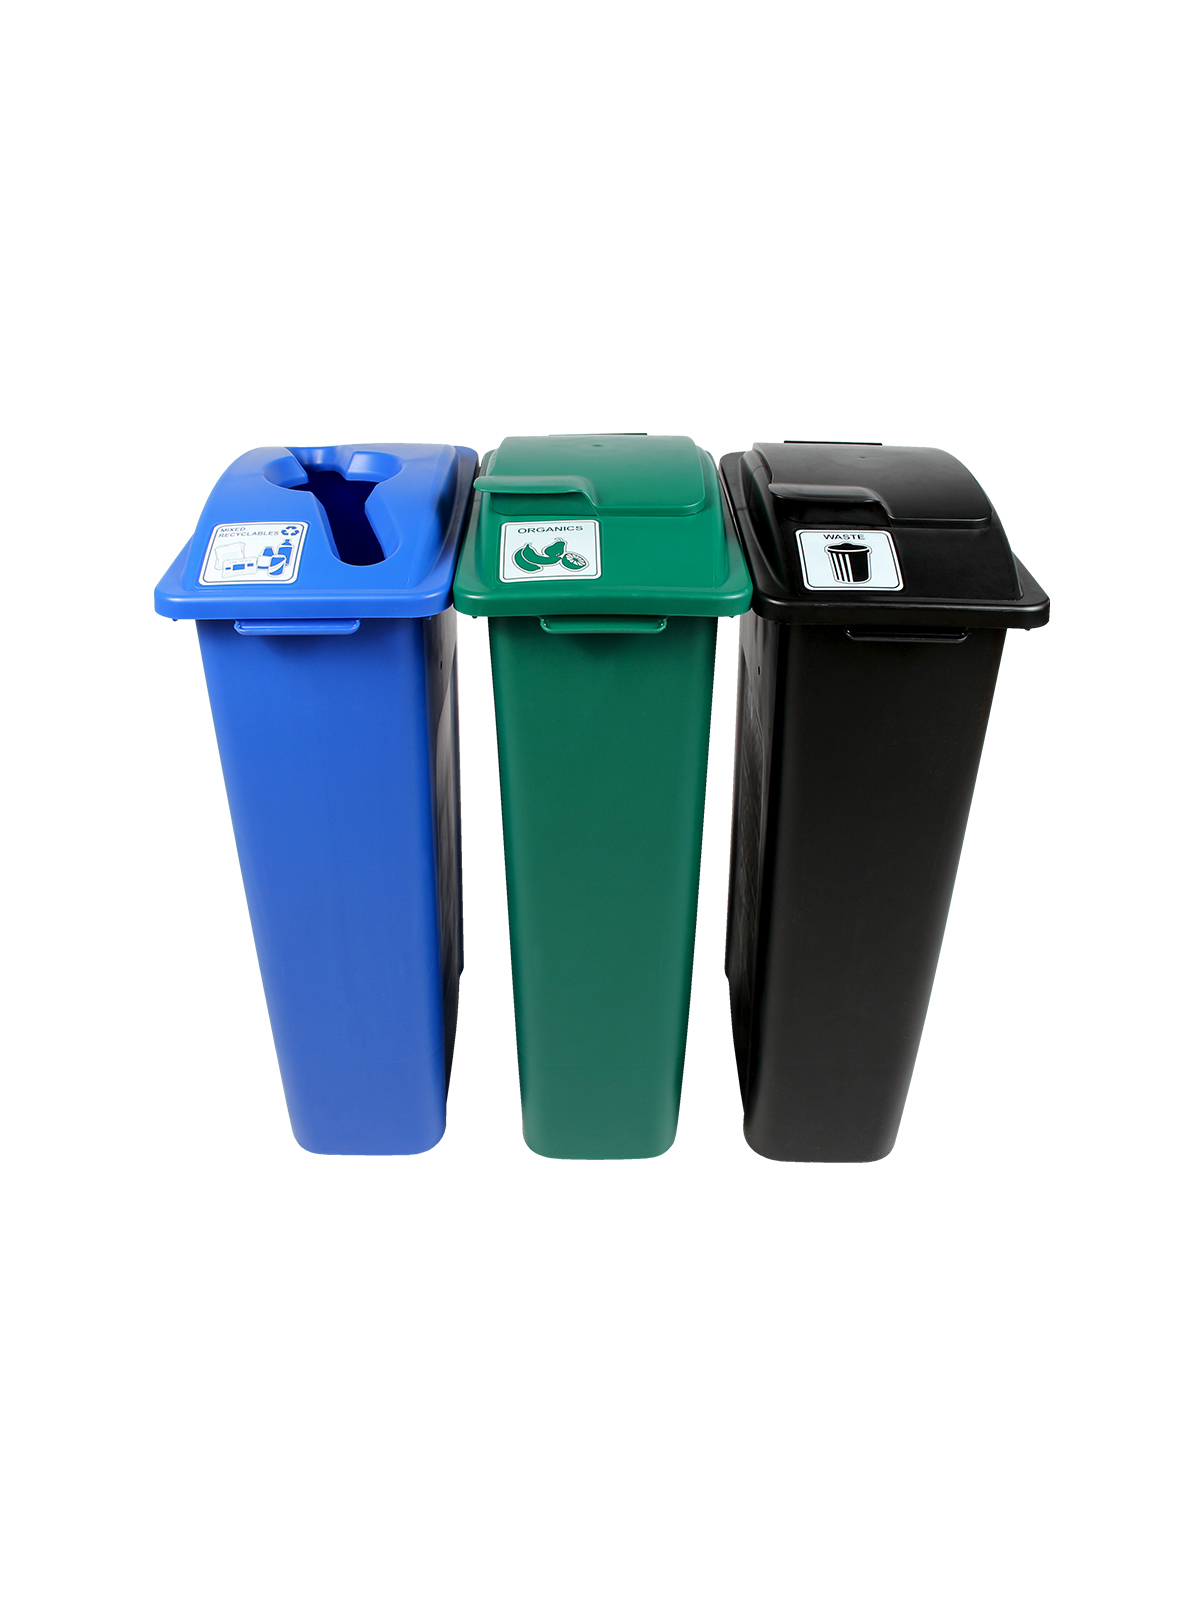 WASTE WATCHER - Triple - Mixed Recyclables-Organics-Waste - Mixed-Solid Lift-Solid Lift - Blue-Green-Black